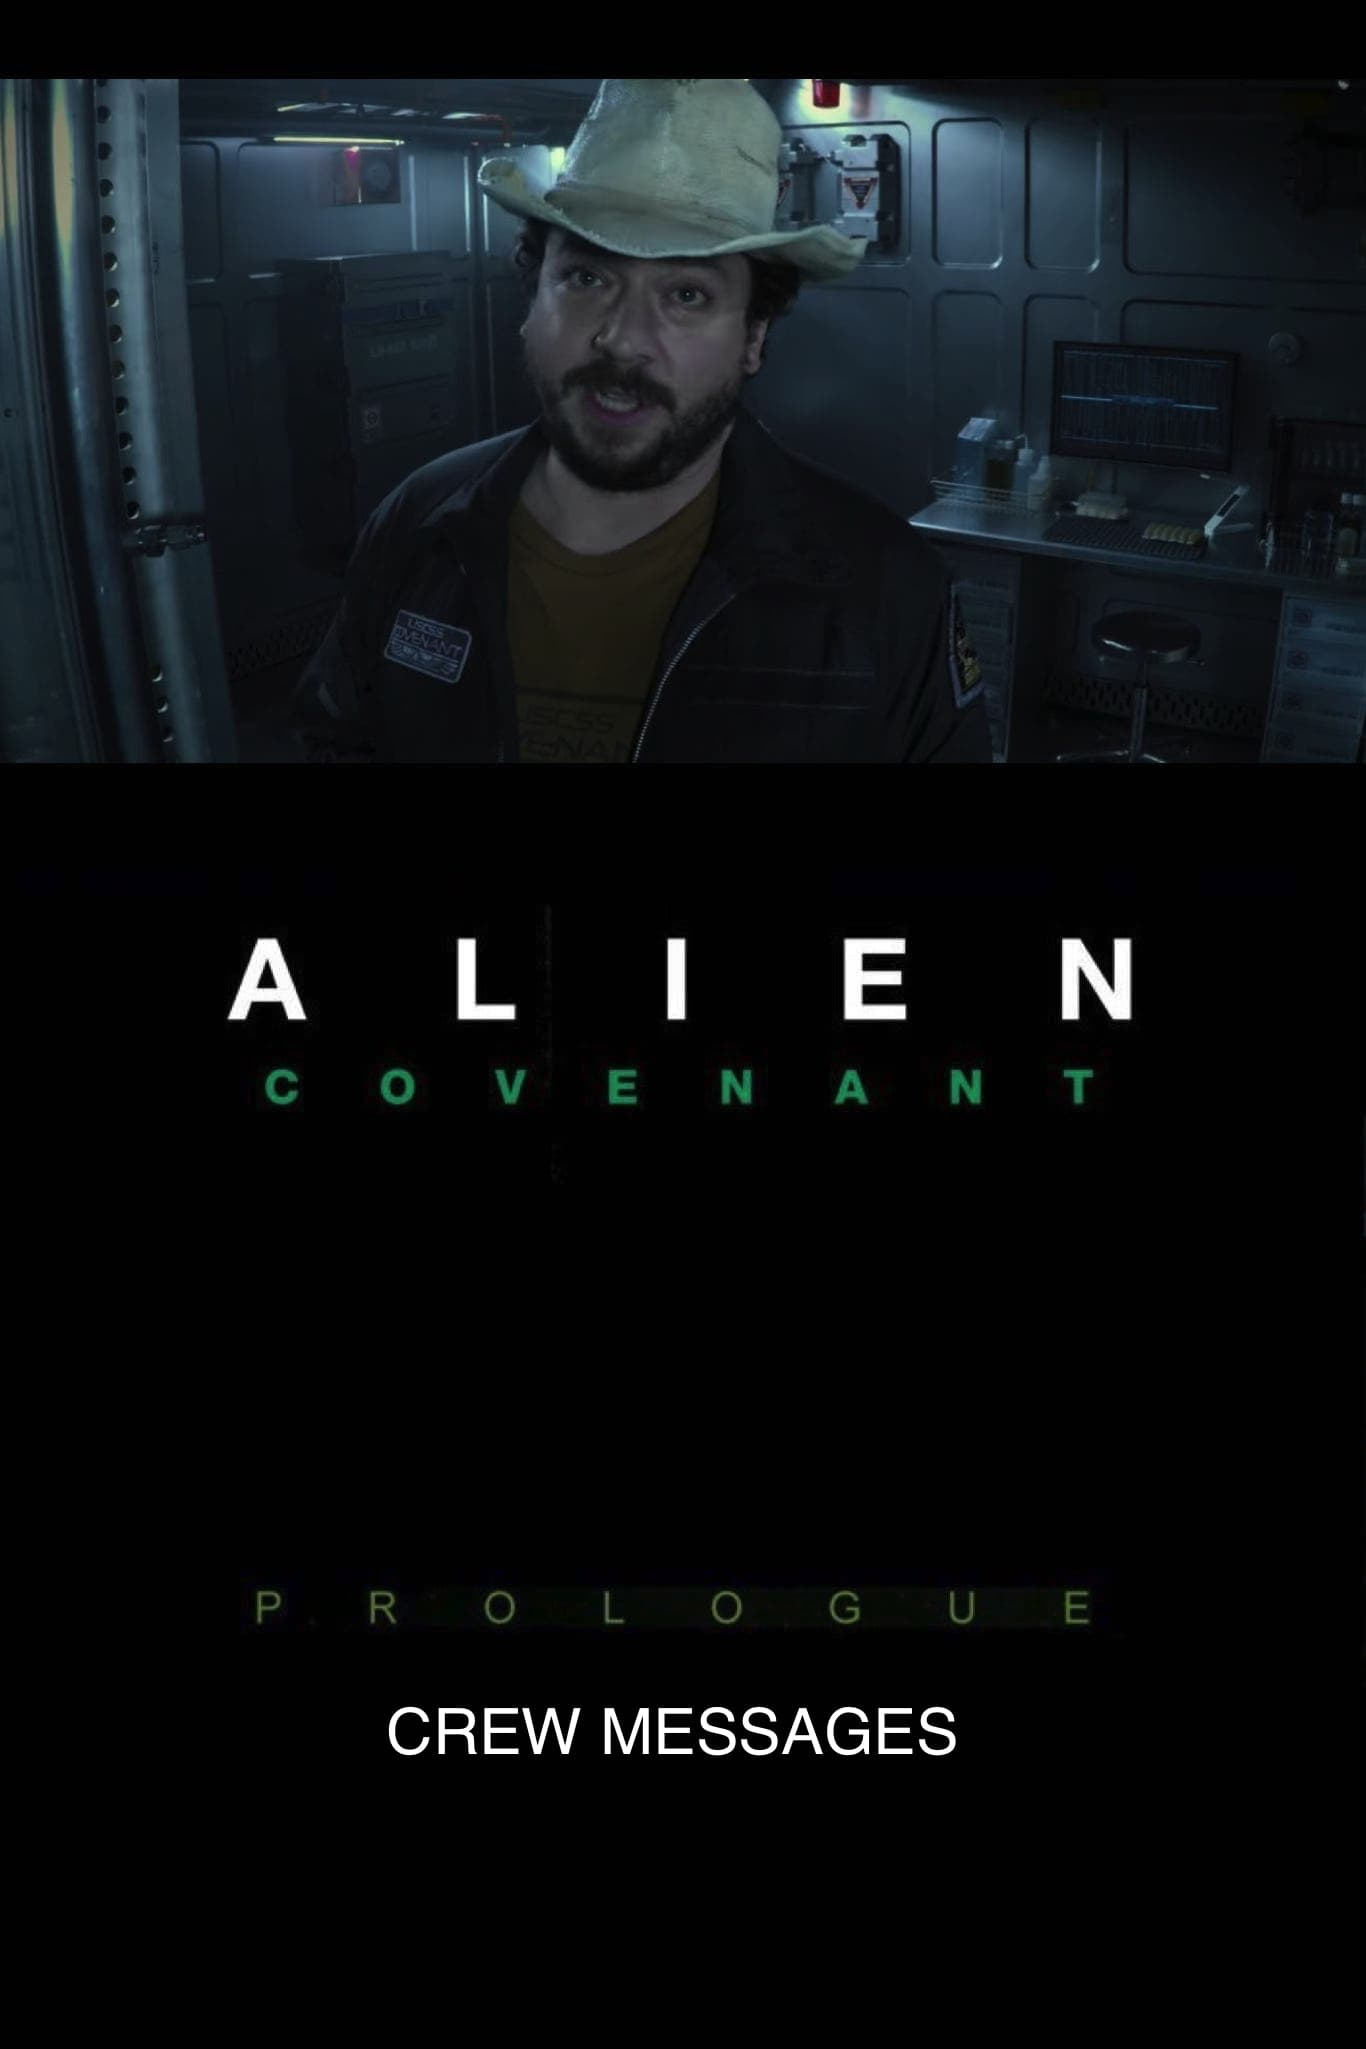 Alien: Covenant Prologue - Crew Messages (2017)